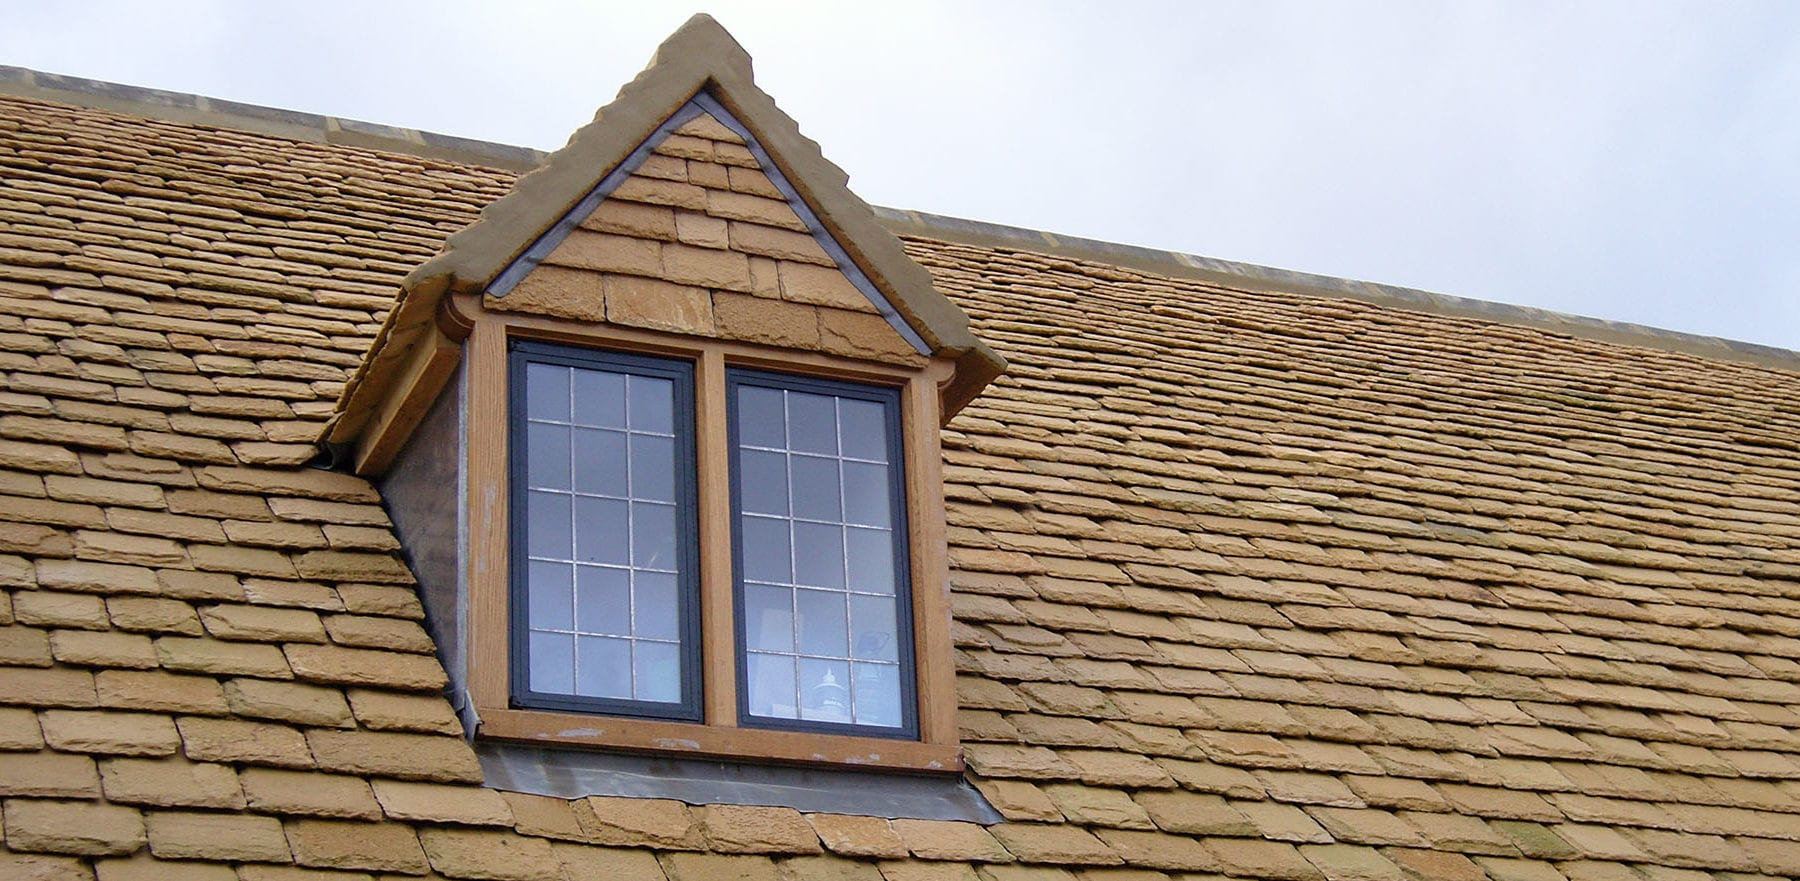 Lifestiles - Natural Stone Roof Tiles - The Stables, England 3